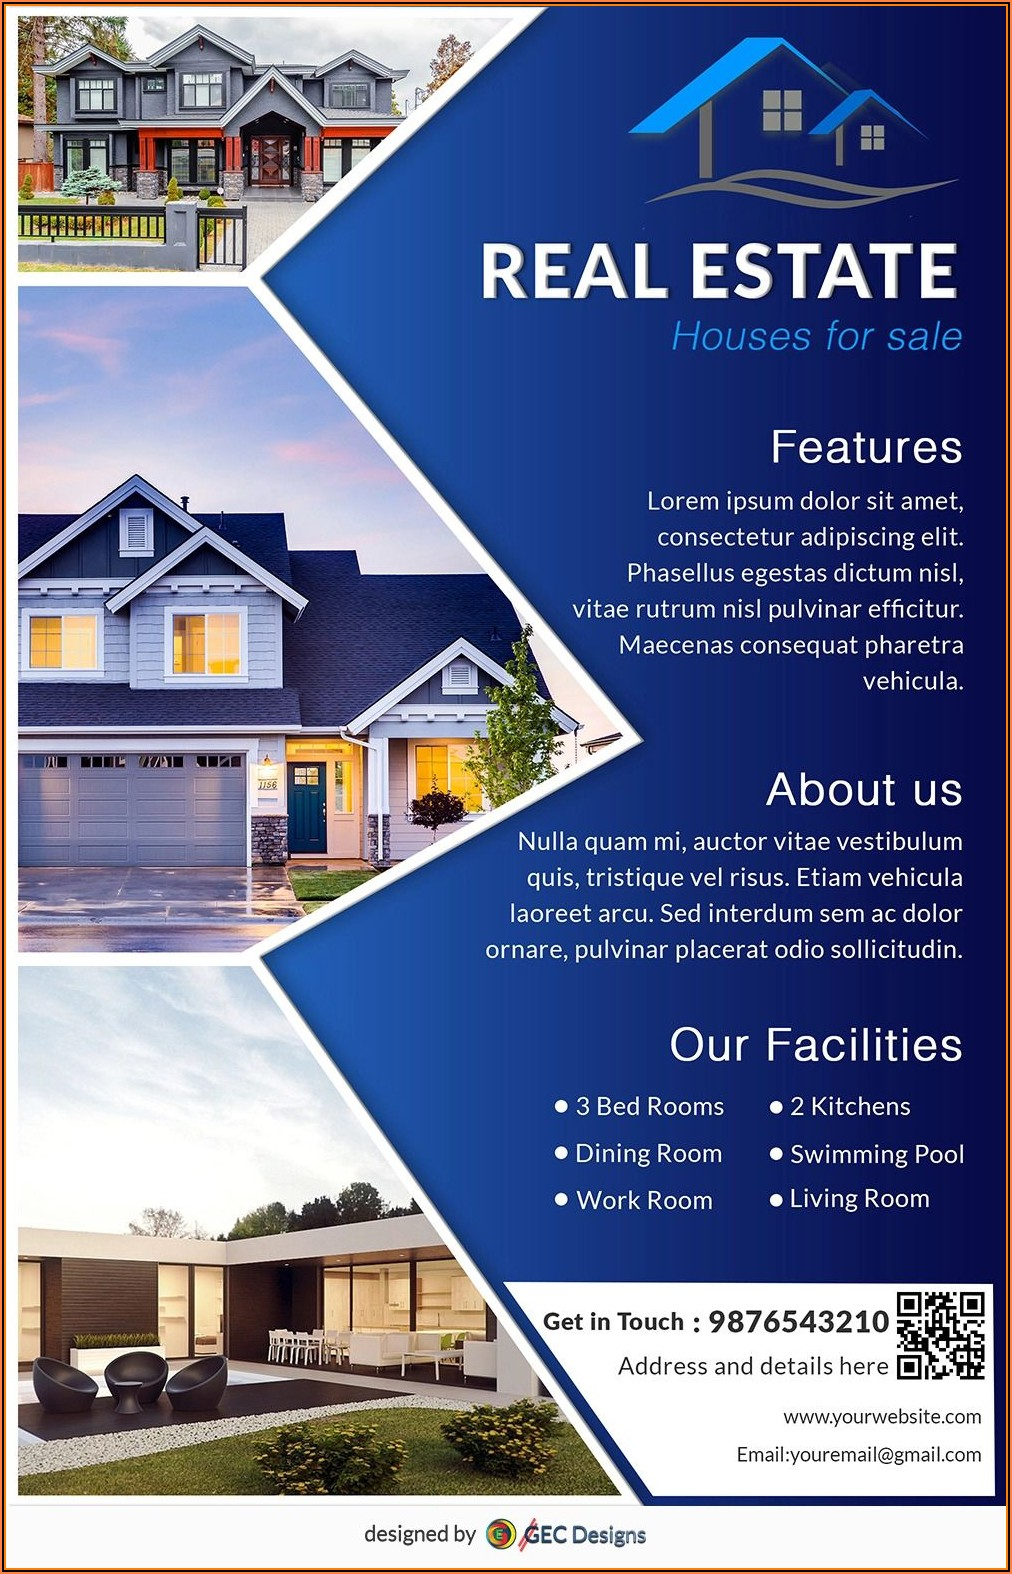 Home For Sale Flyer Template Microsoft Word